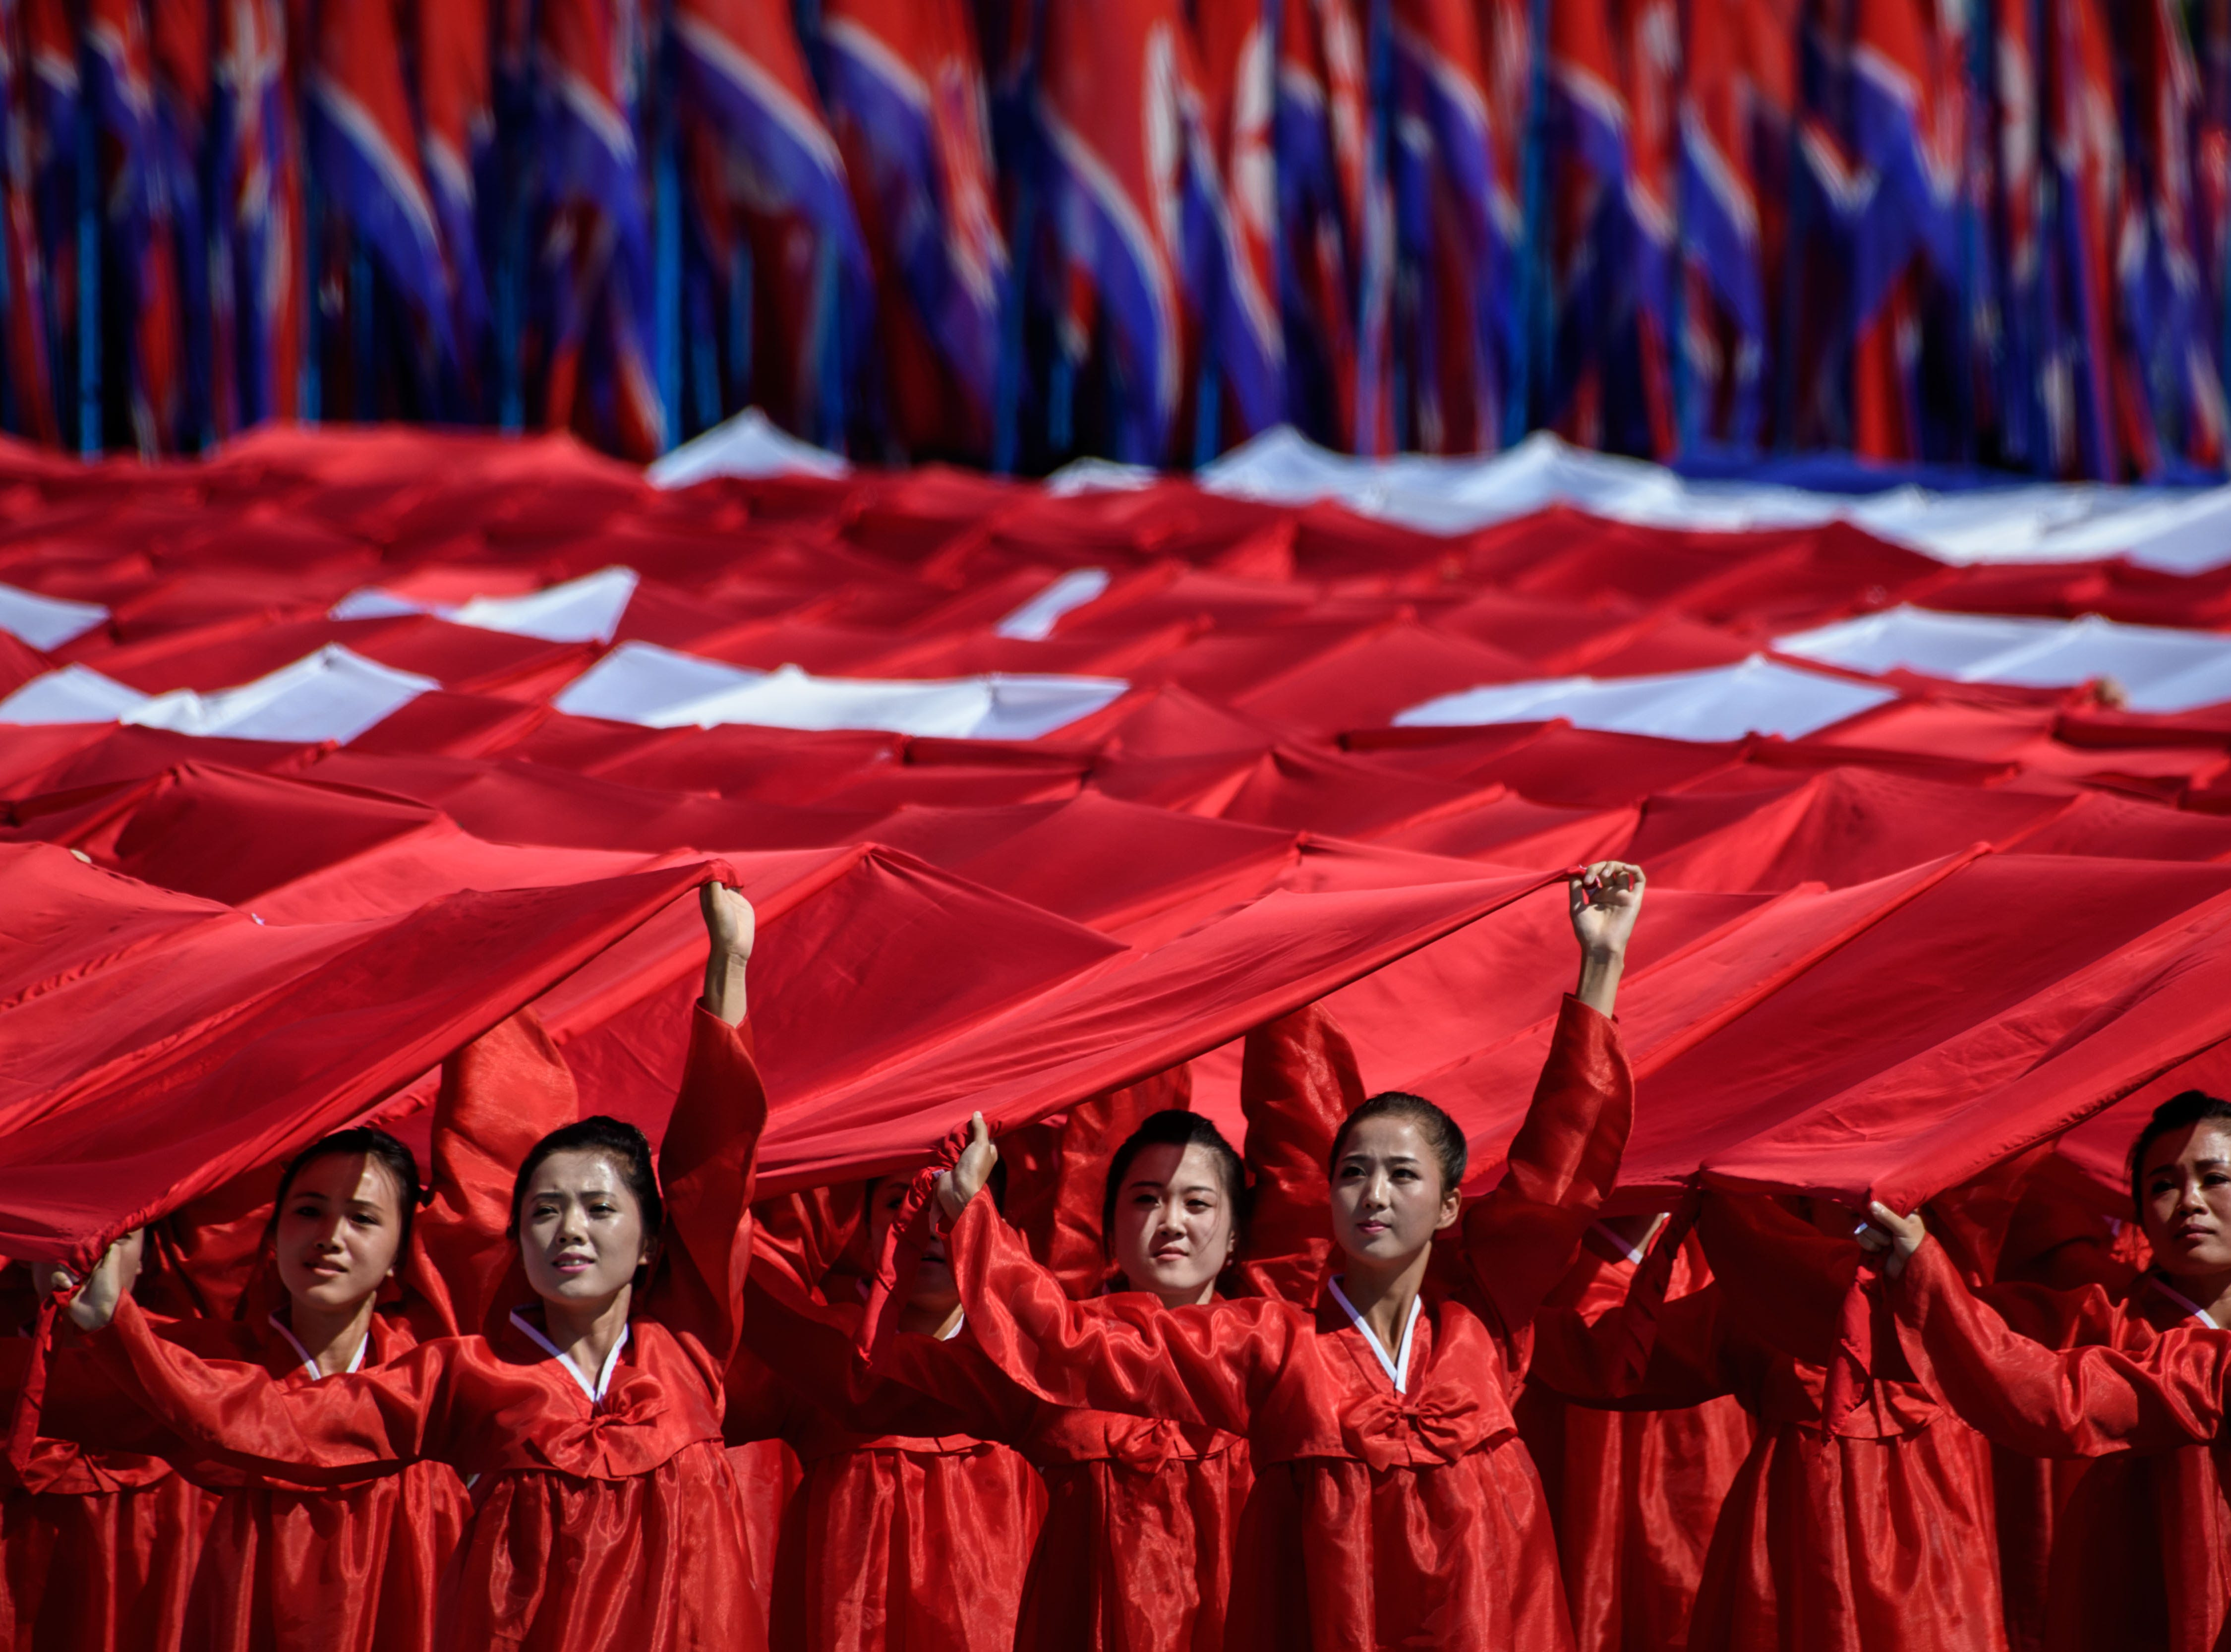 Participants march past a balcony from where North Korea's leader Kim Jong Un was watching, during a mass rally on Kim Il Sung square in Pyongyang on Sept. 9, 2018.